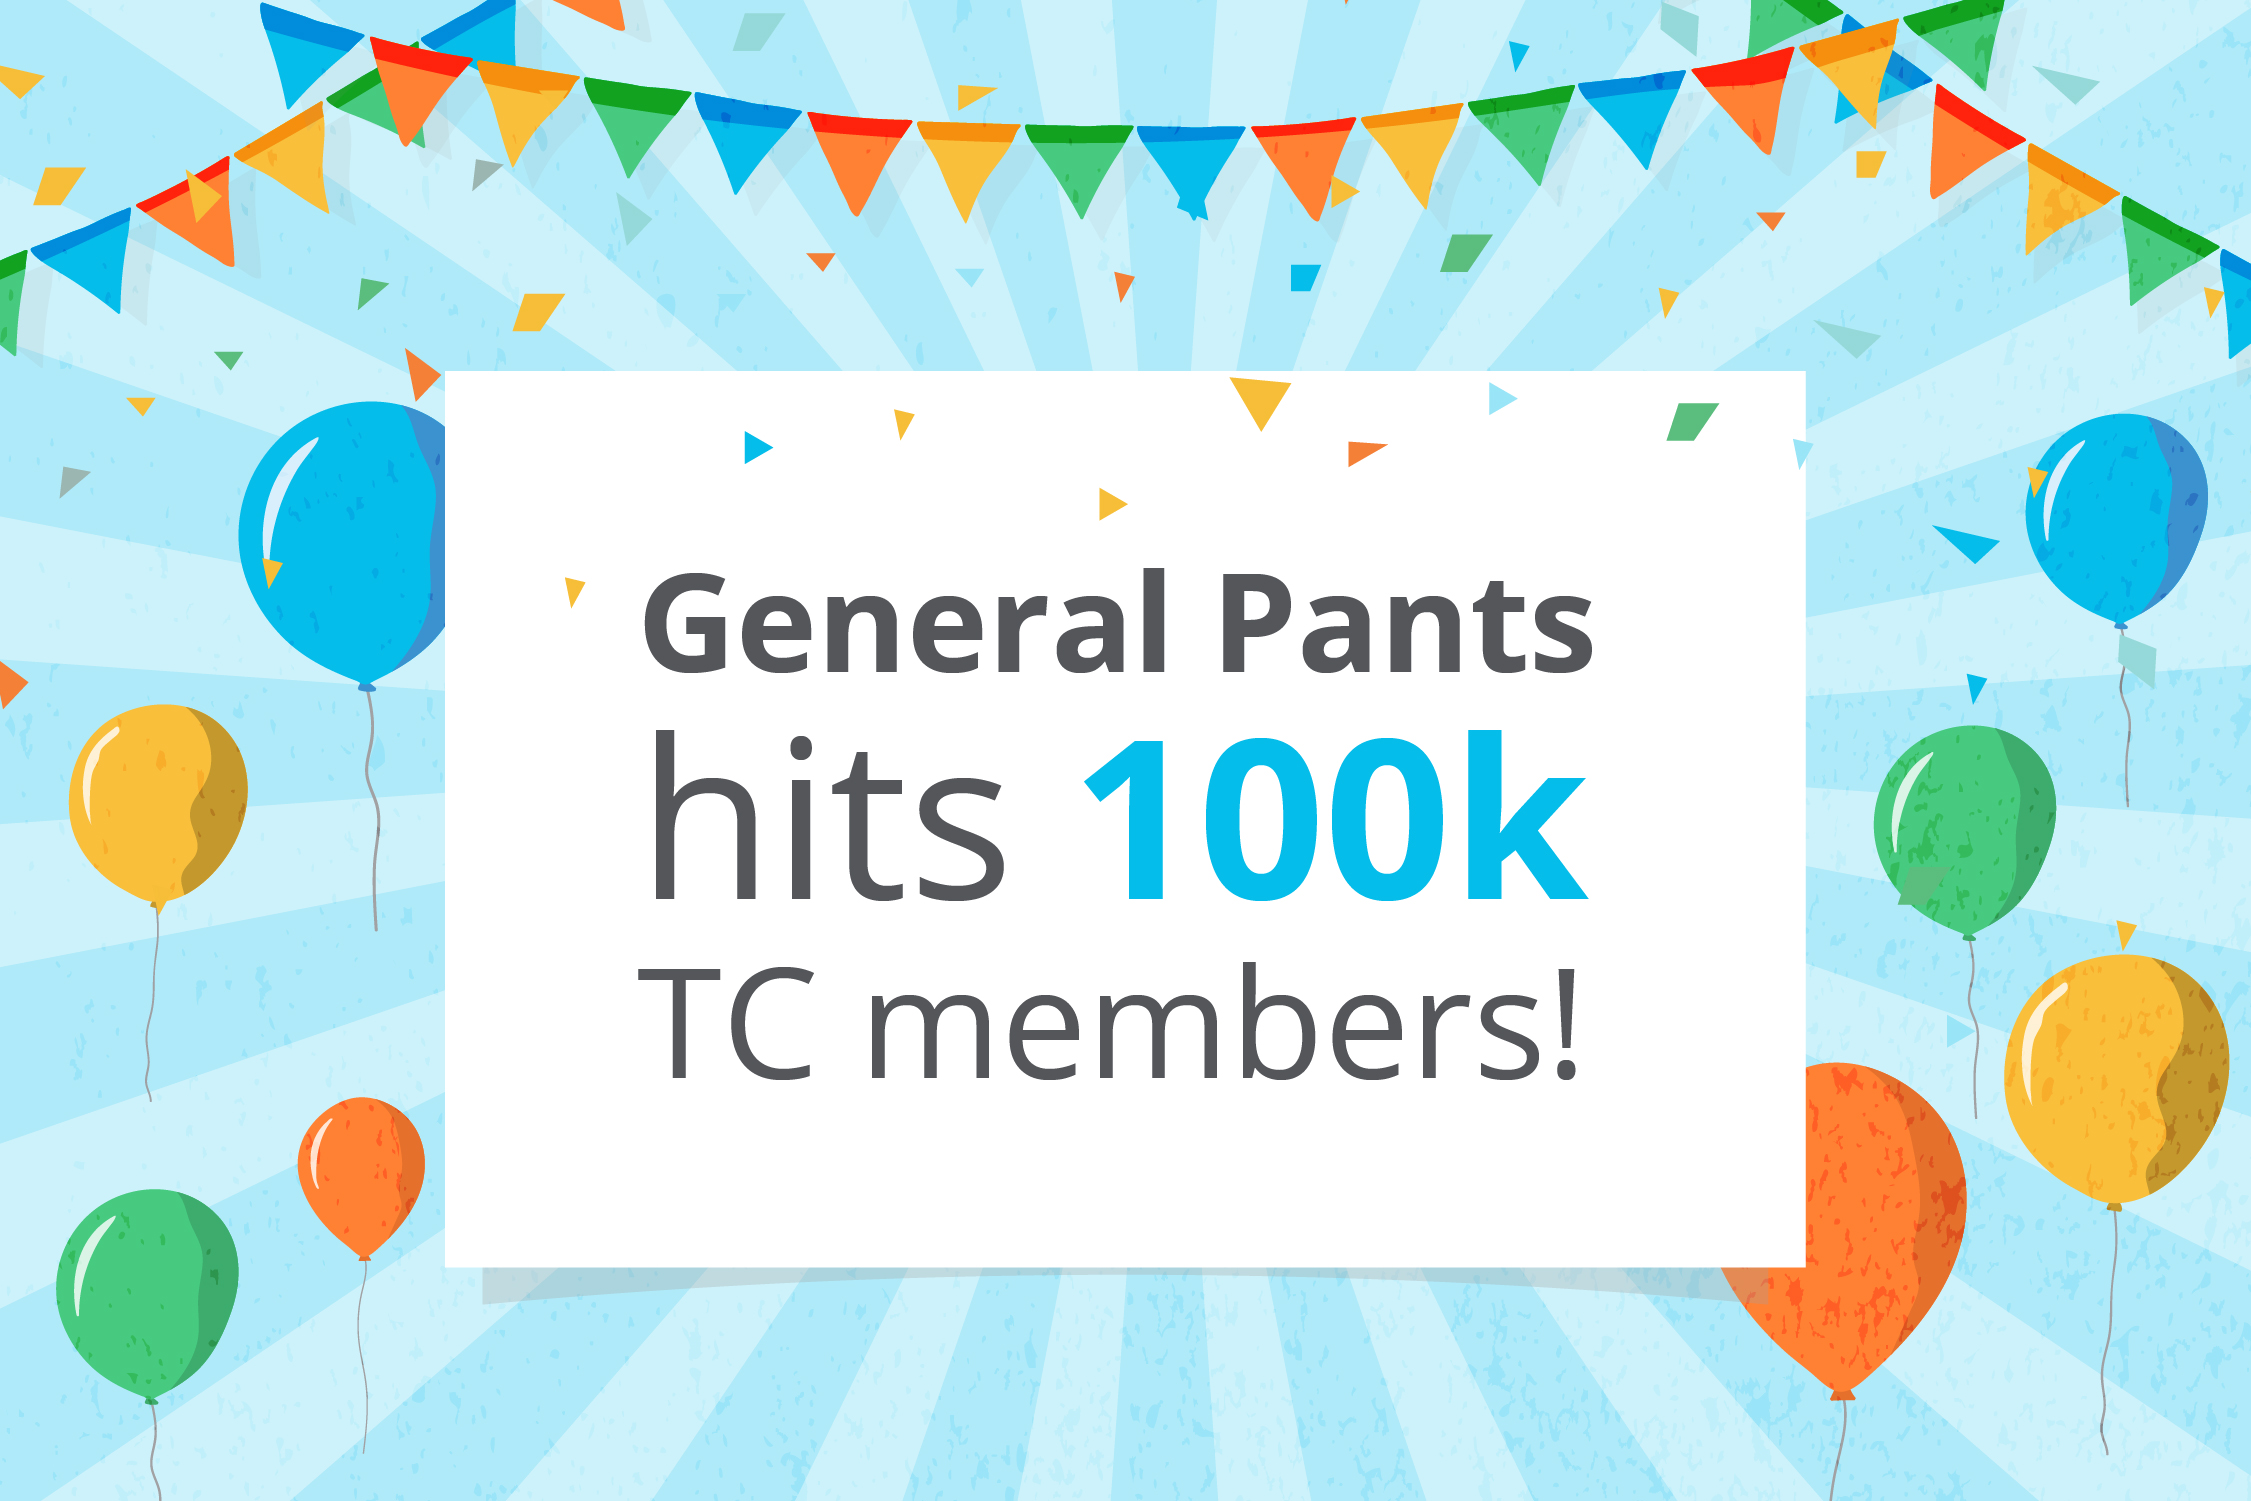 General Pants hit 100,000 Talent Community members 🙌 #HighFive